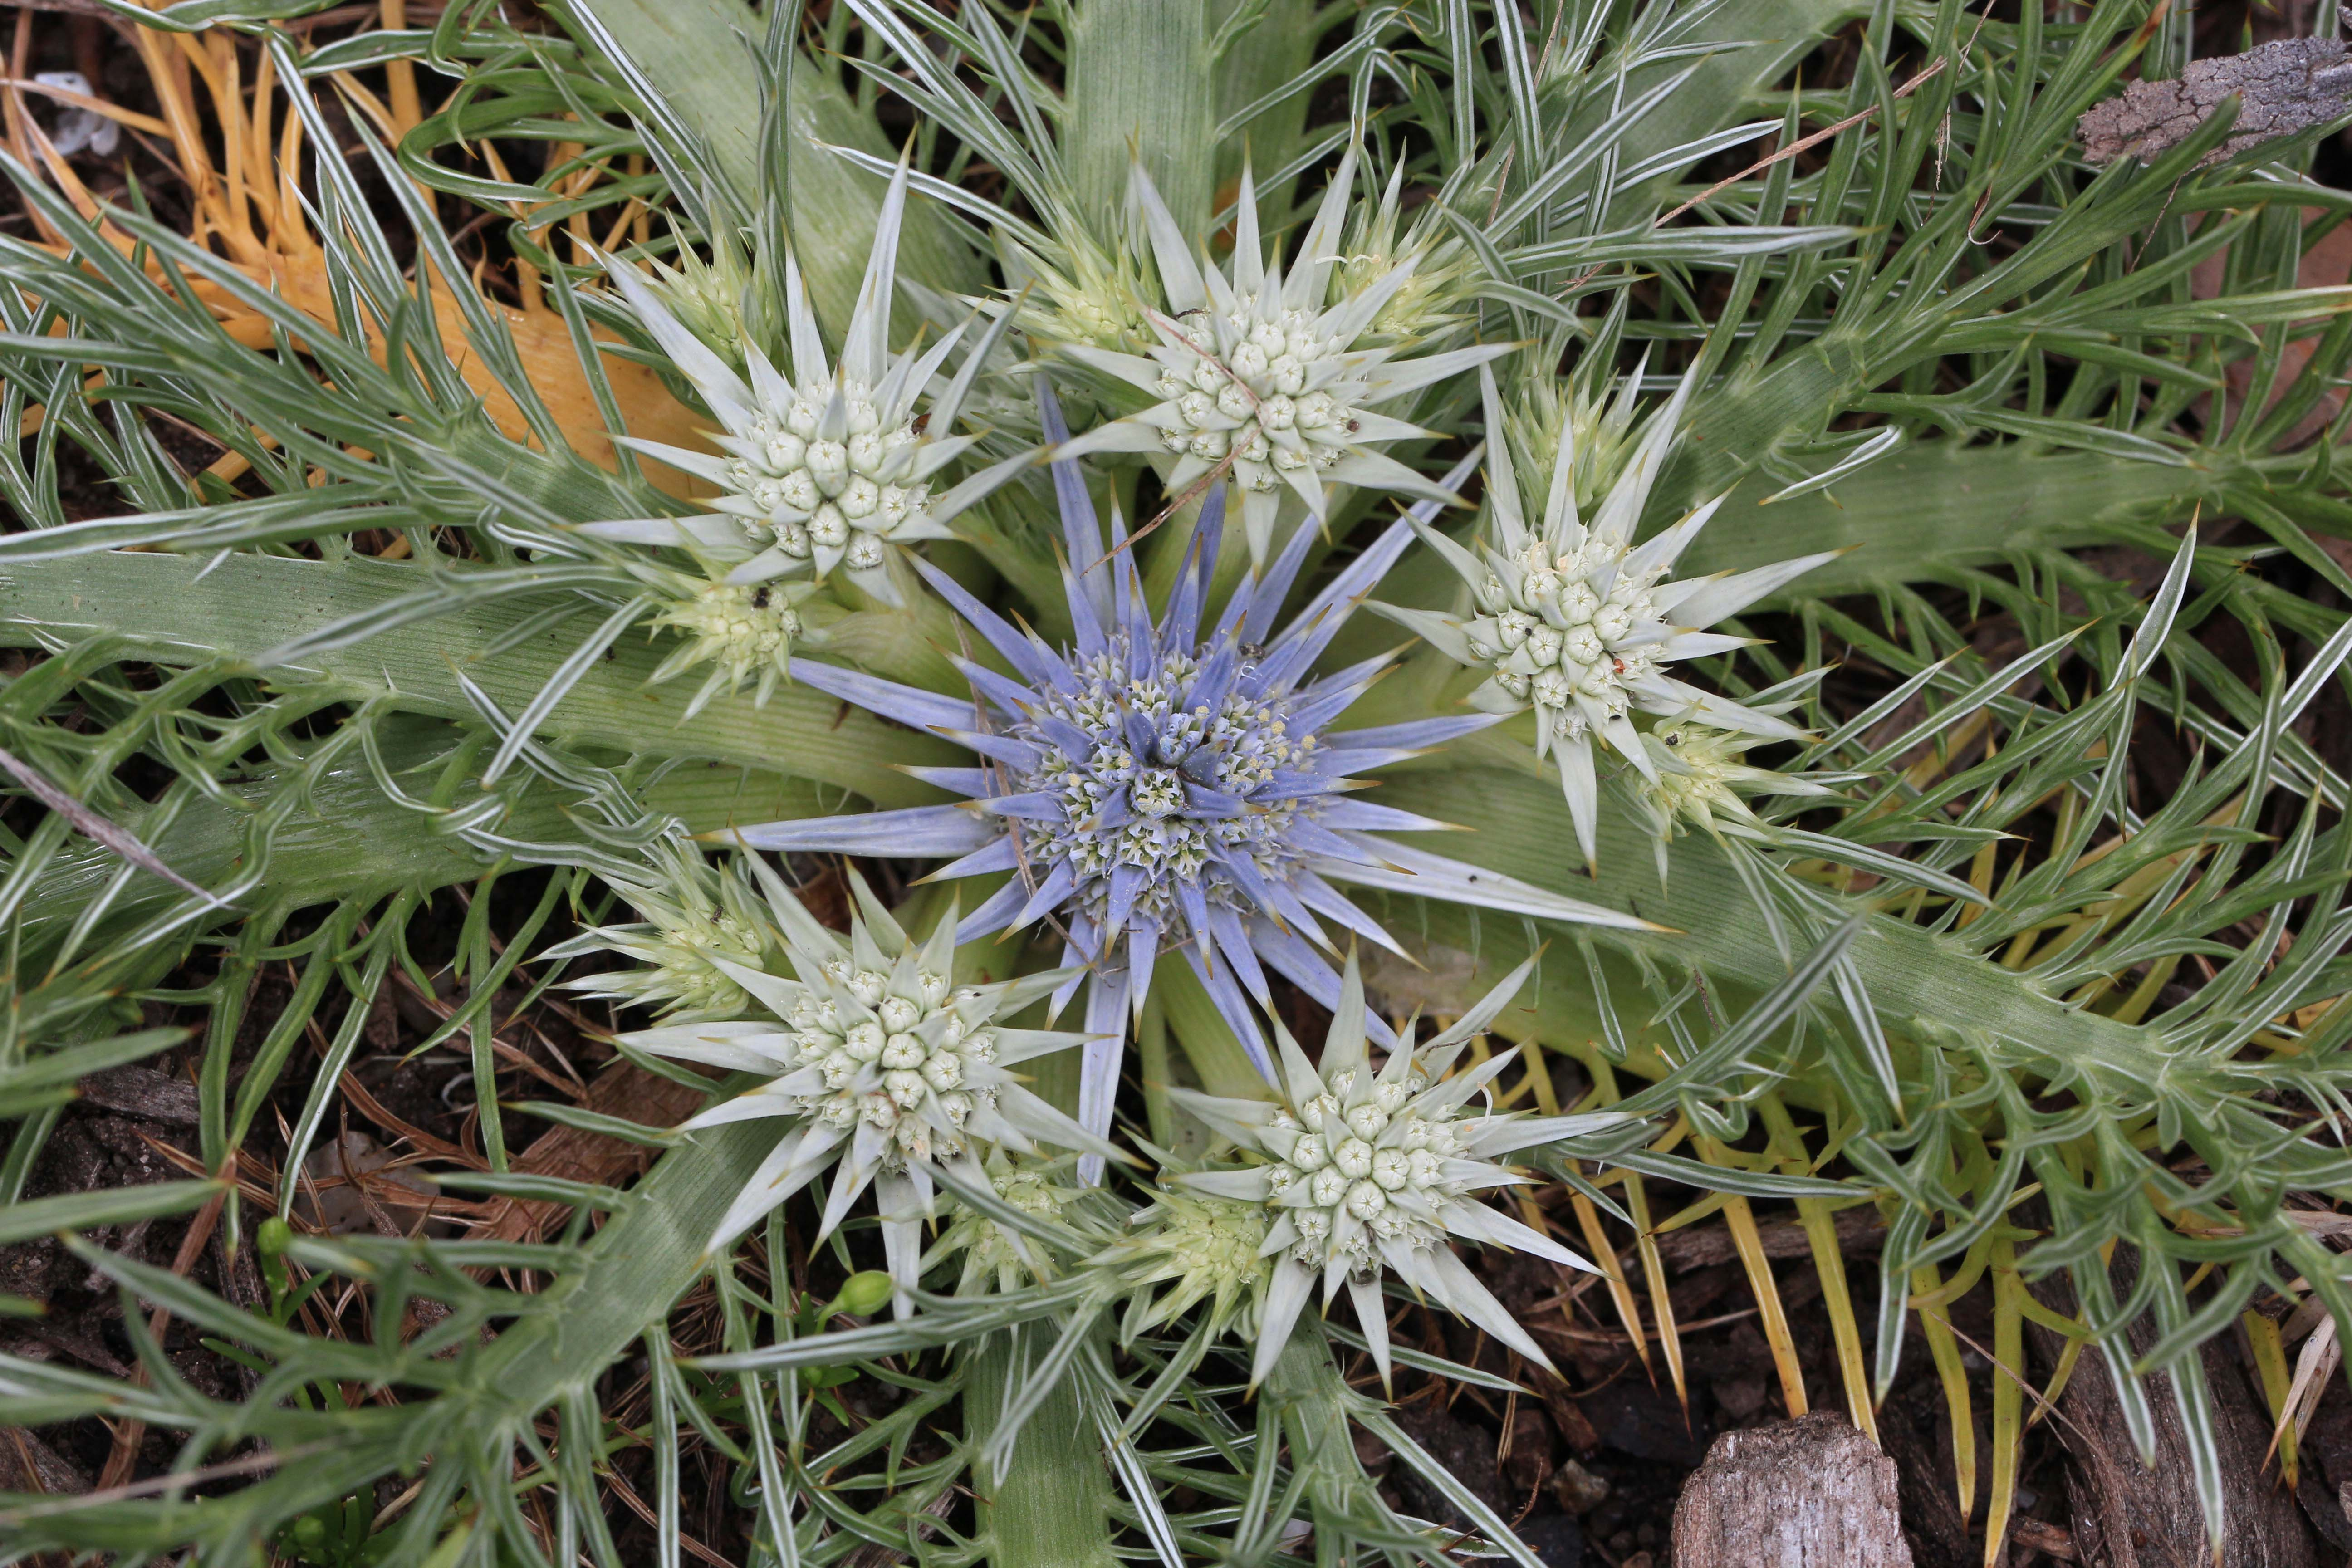 Eryngium-ovinum-Dave-Marrison-small-resolution